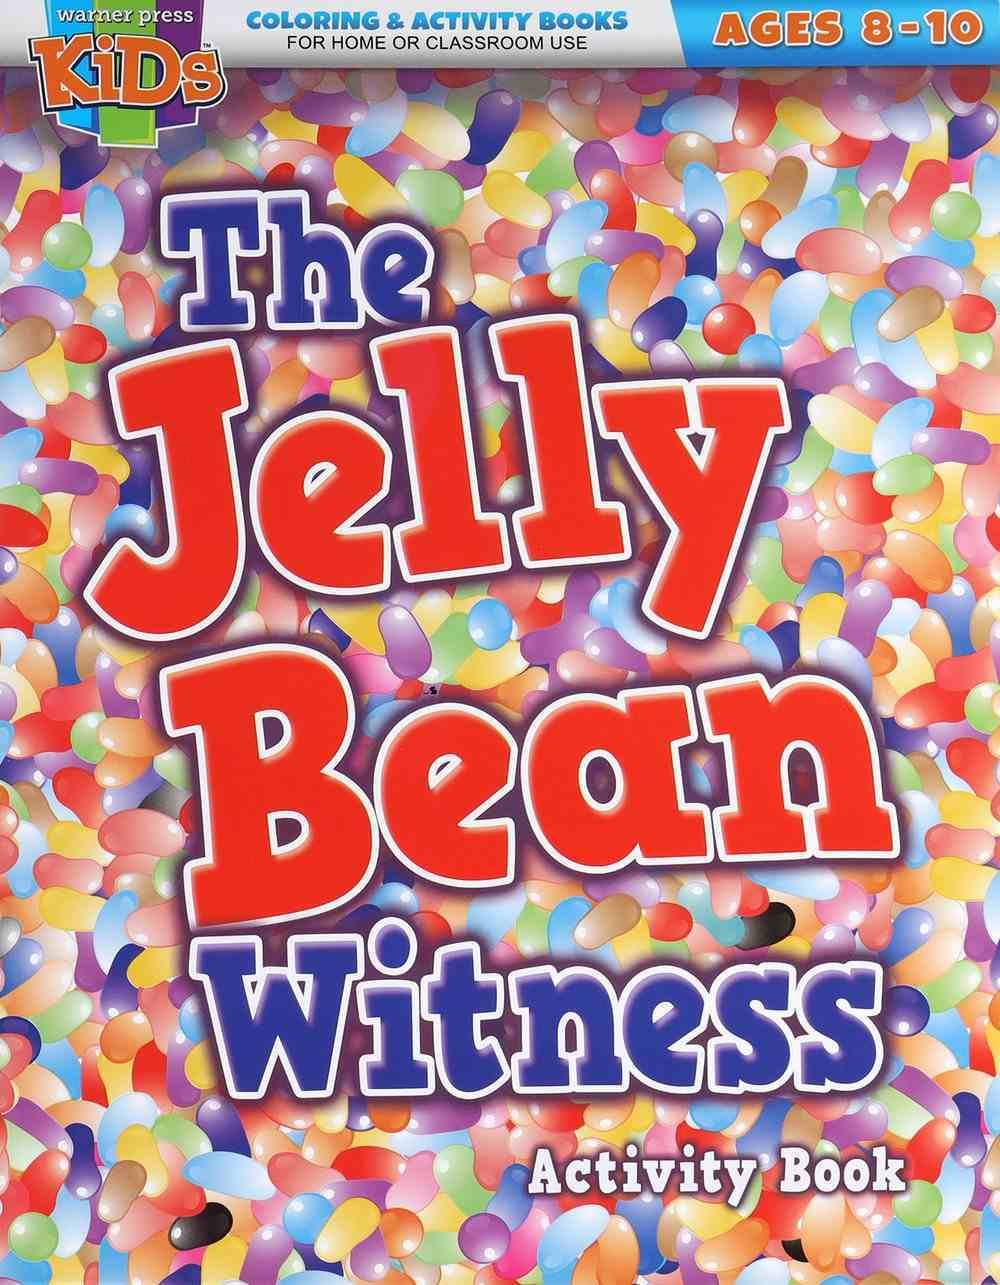 The Jelly Bean Witness (Ages 8-10 Reproducible) (Warner Press Colouring & Activity Books Series) Paperback